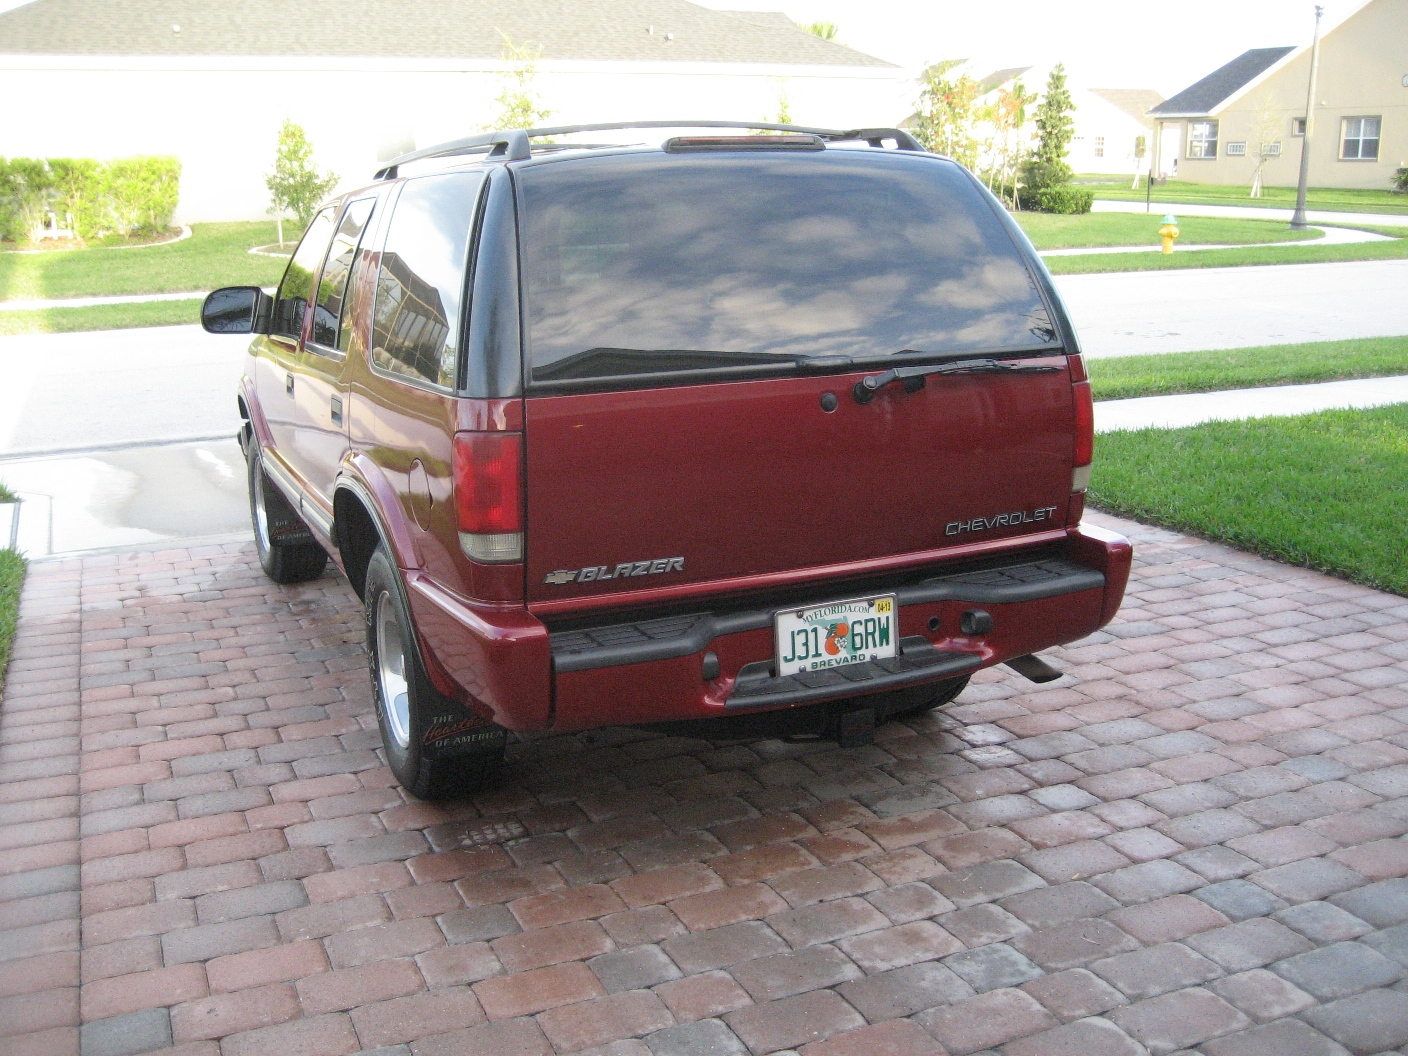 Picture of 2000 Chevrolet Blazer 4 Dr LT SUV